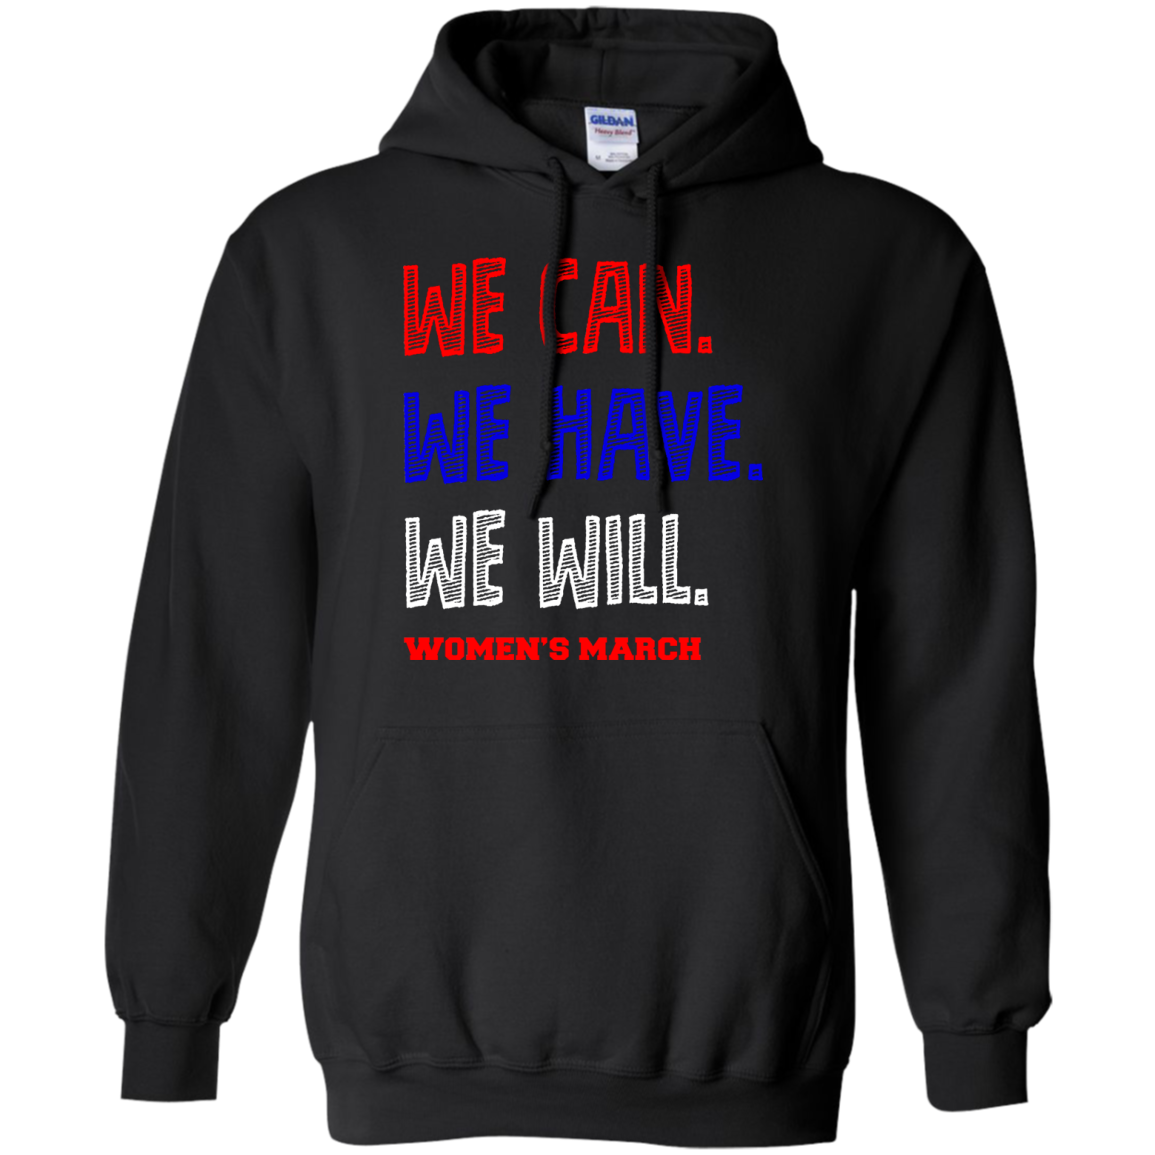 We Can, We Have, We Will Women's March Hoodie